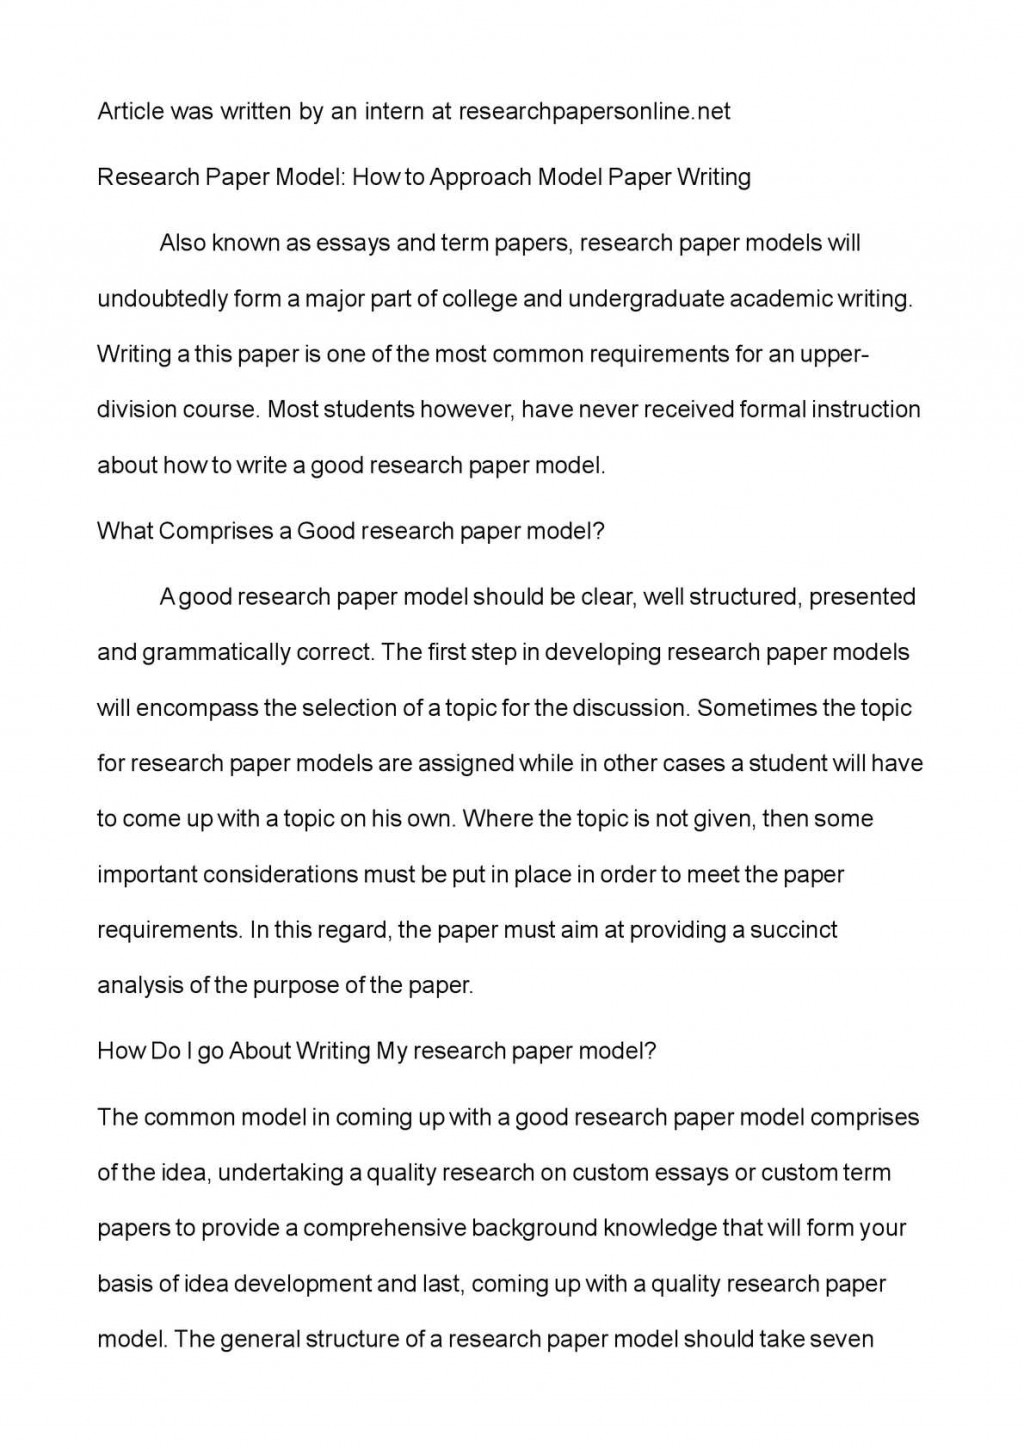 012 Research Paper P1 Correct Order Of Wonderful A Sequence Steps For Writing Large